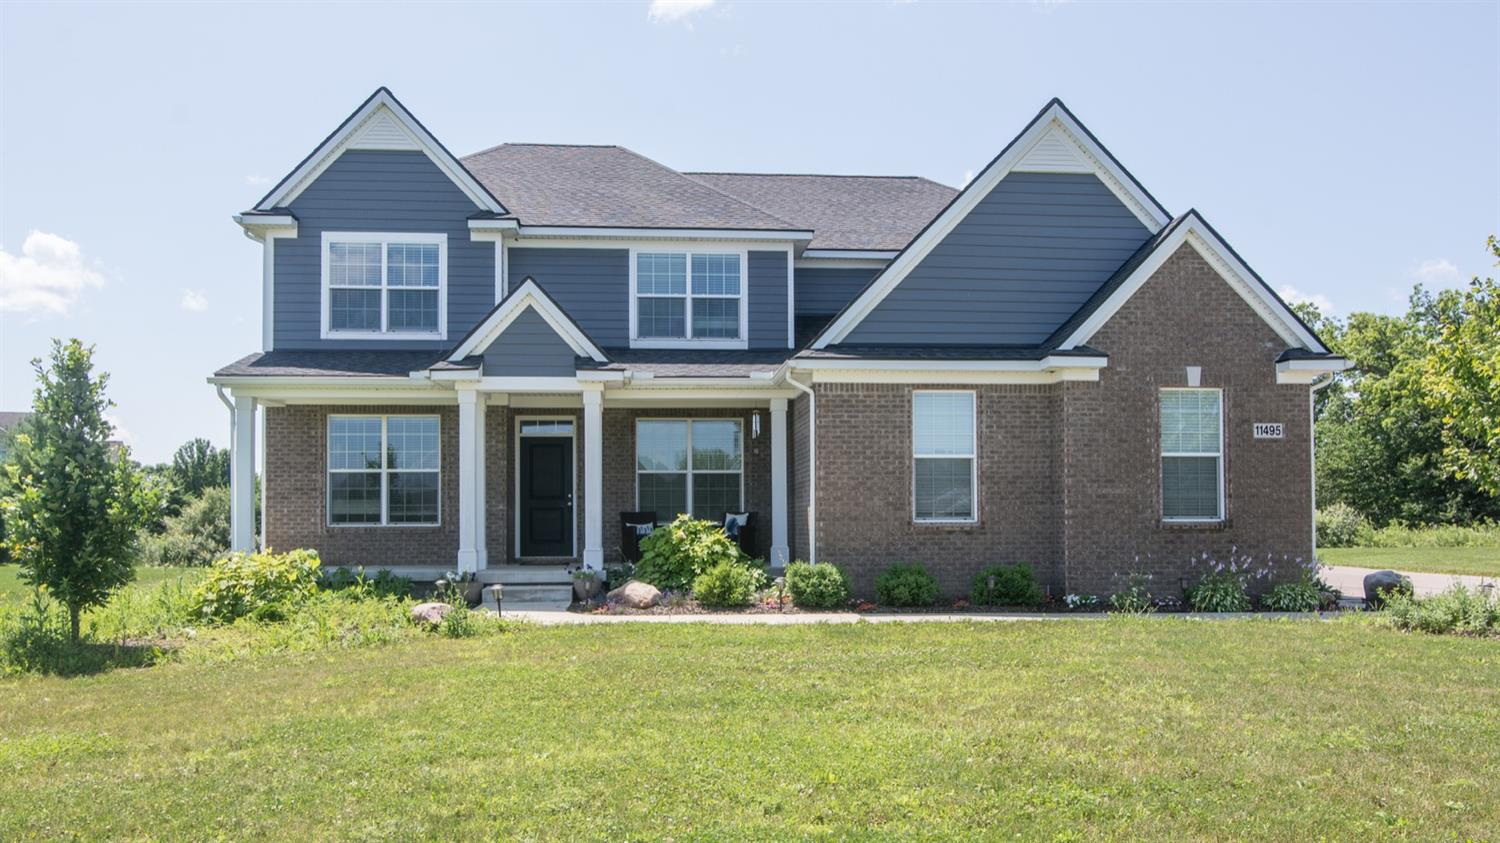 MLS# 3263930 - 11495  Castleton Court Dexter MI 48130